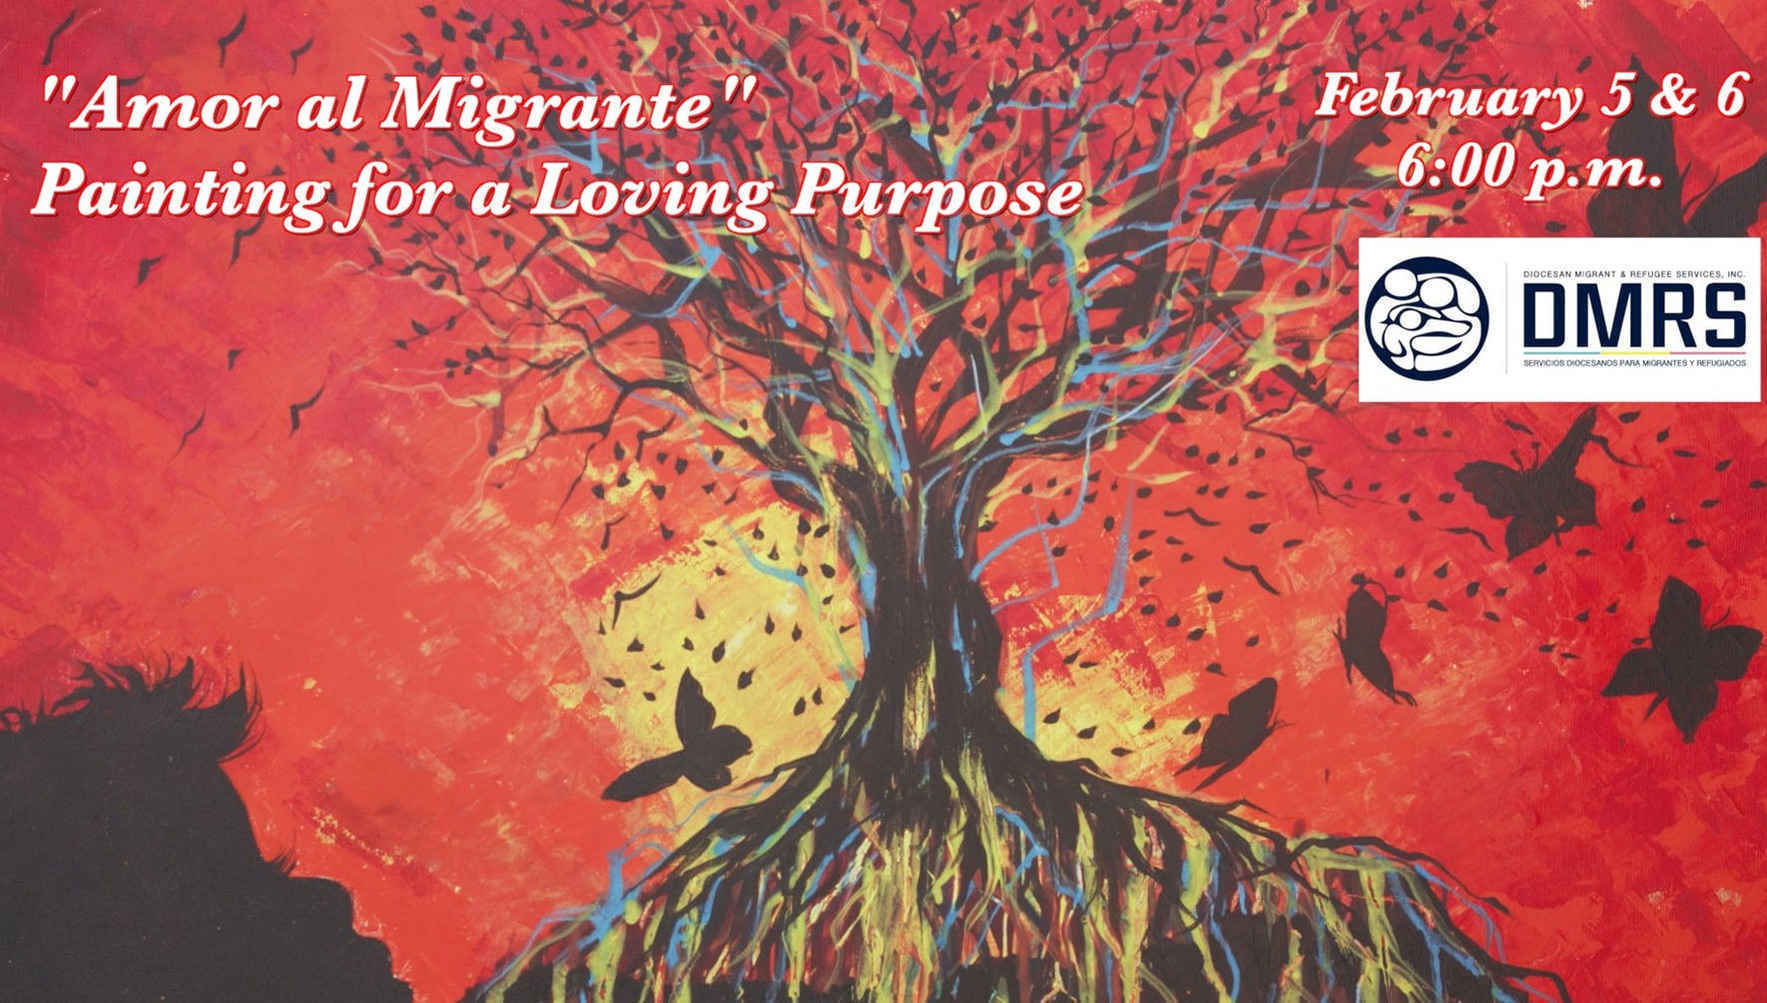 Flash Sale for February 6, 2020: Amor al Migrante: Painting for a Loving Purpose image